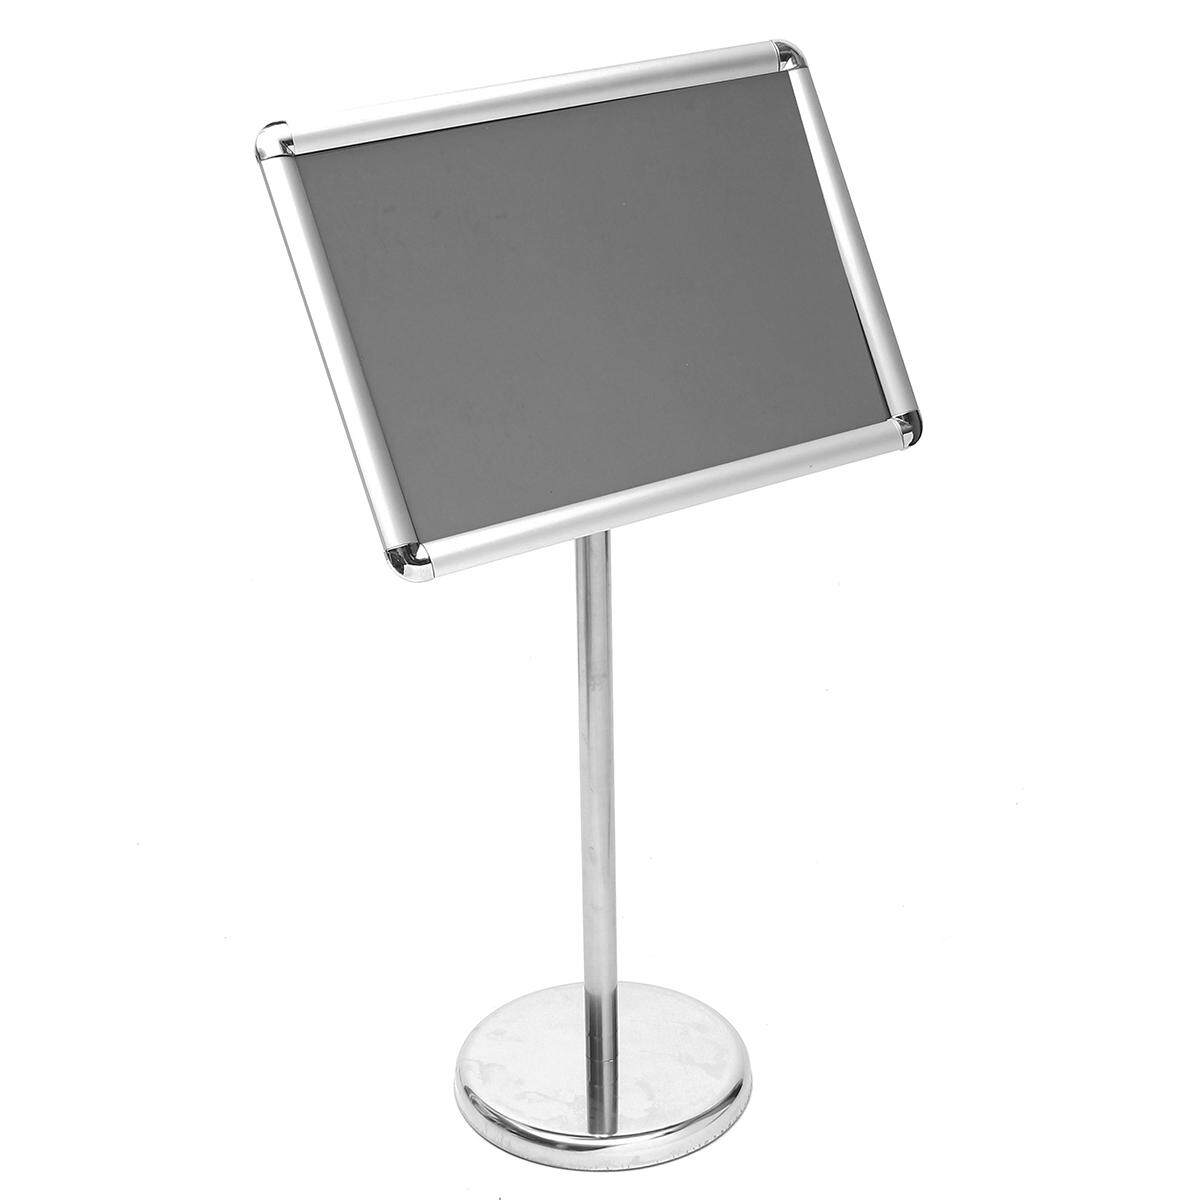 ADJUSTABLE HEIGHT CUSTOM FLOOR DISPLAY STAND SIGN HOLDER SNAP POSTER FRAME Rounded corners A3